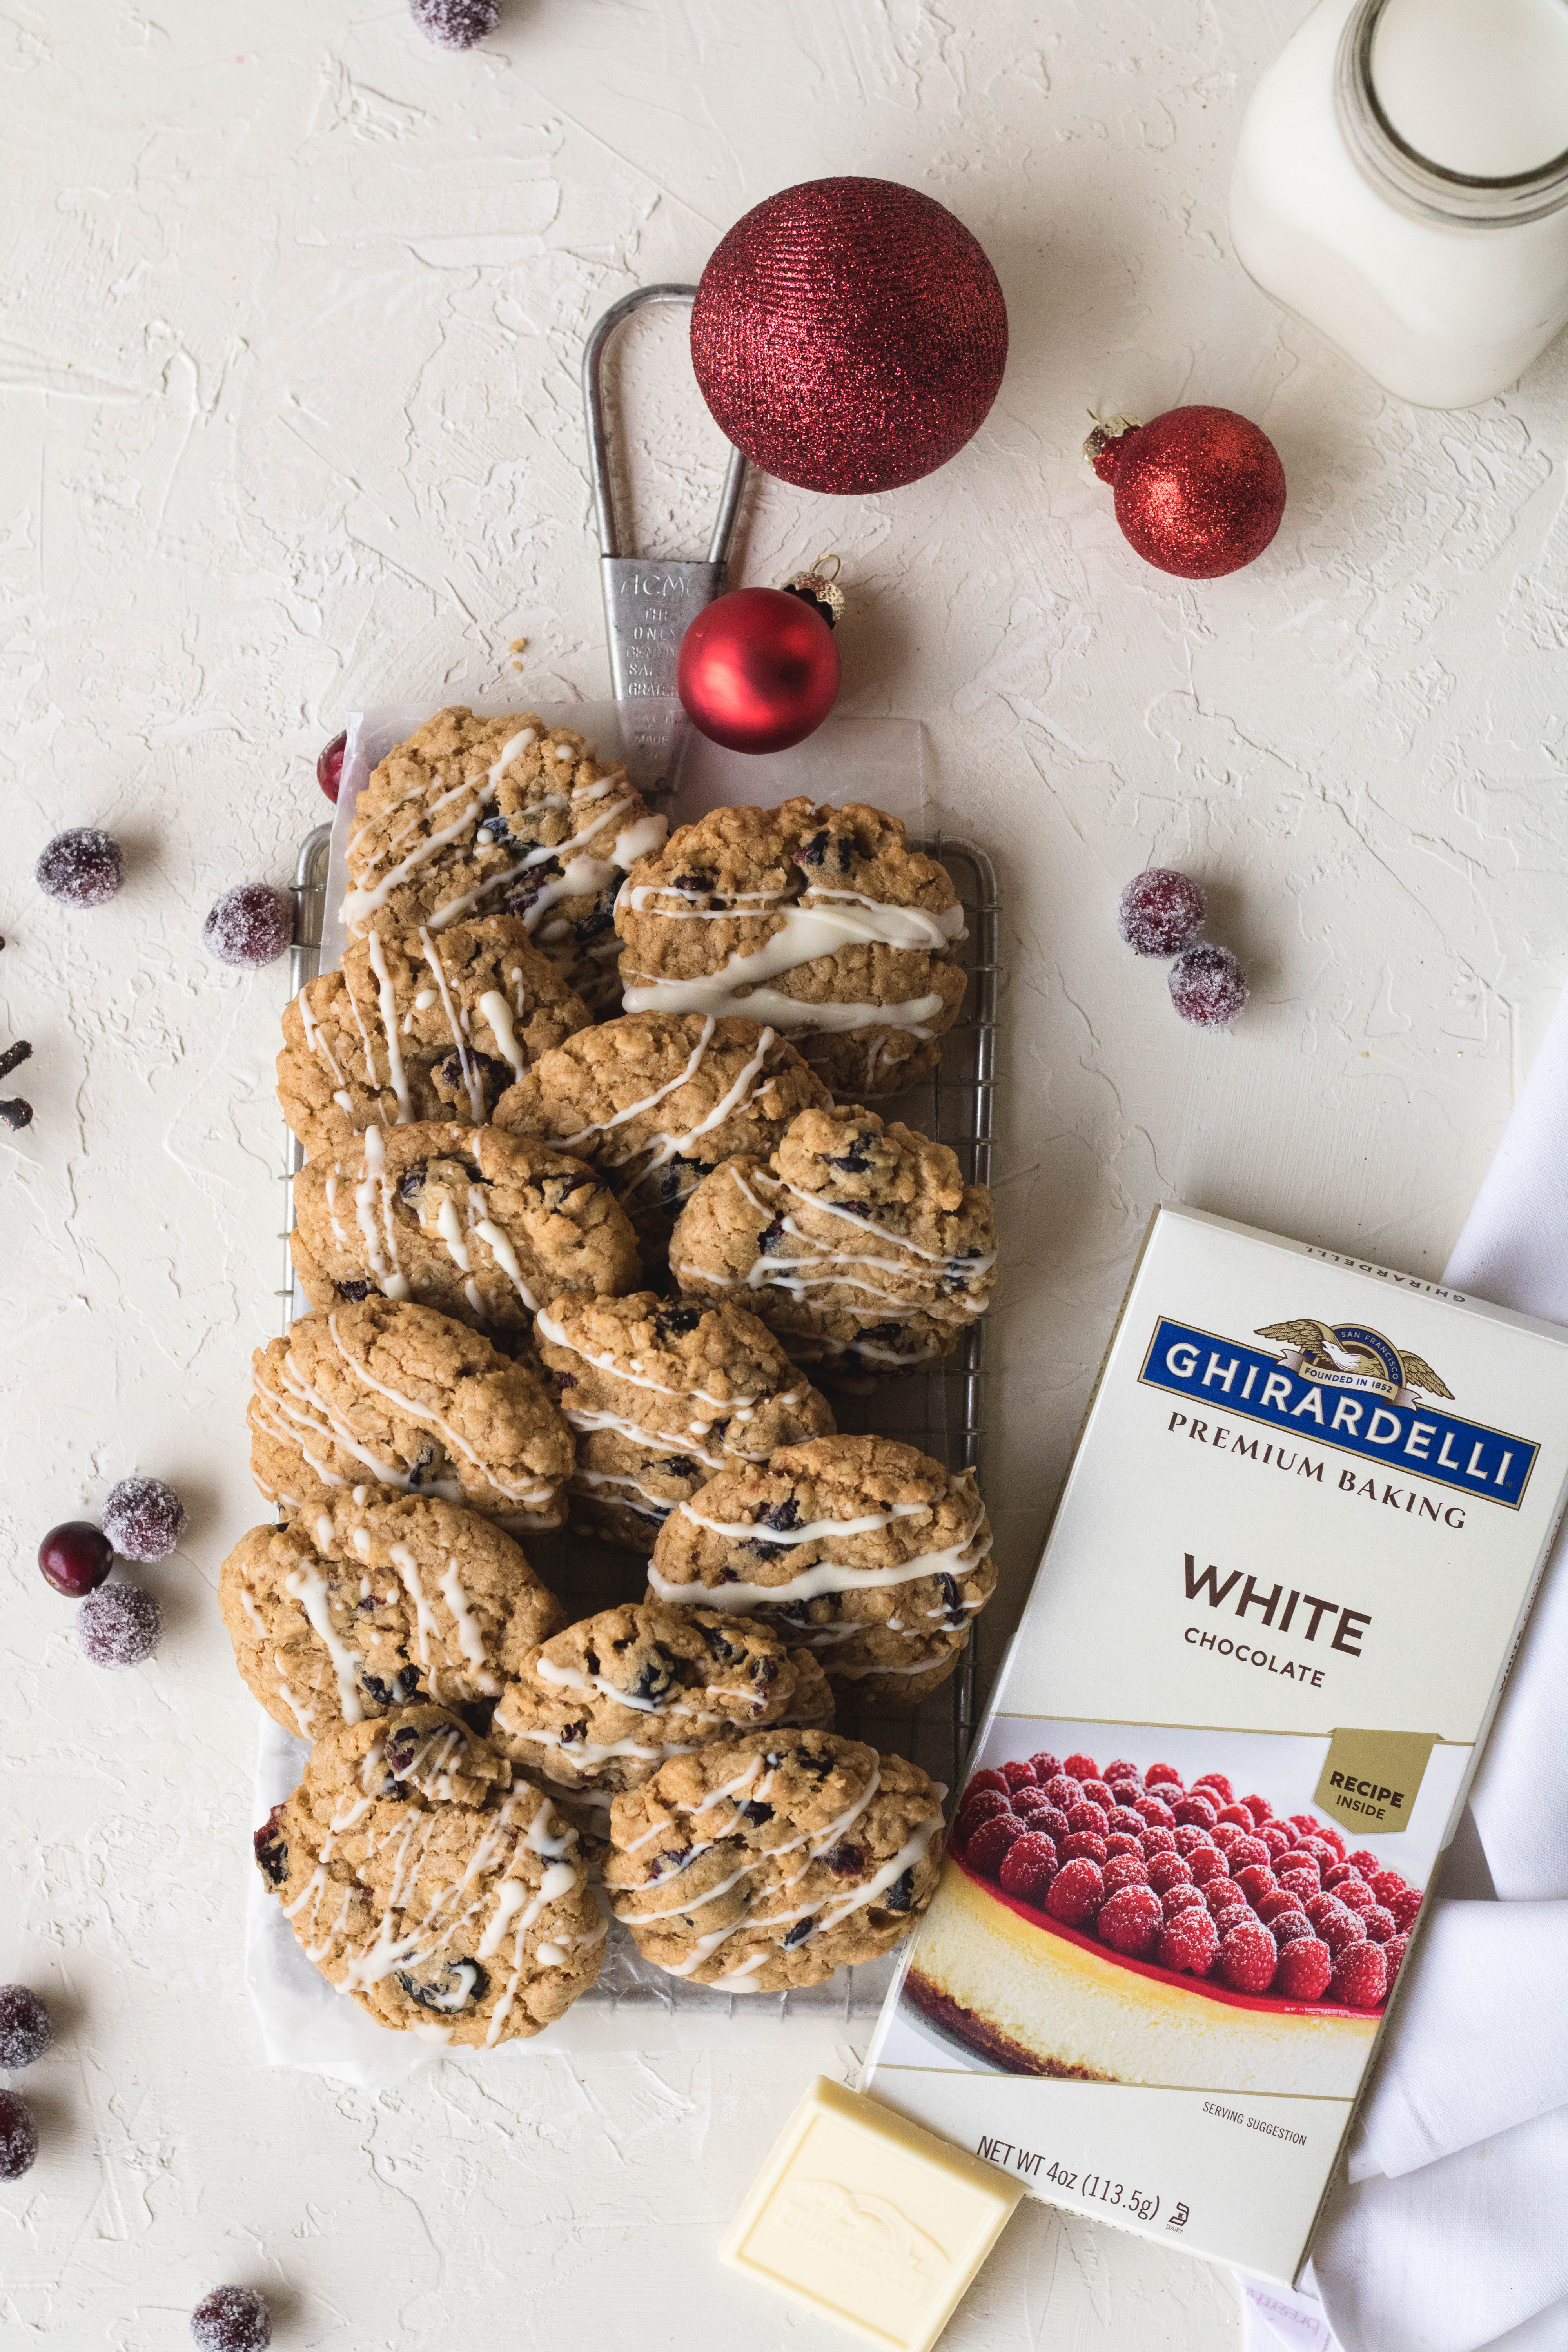 Festile oatmeal and cranberry cookies with ghirardelli white chocolate drizzled on top